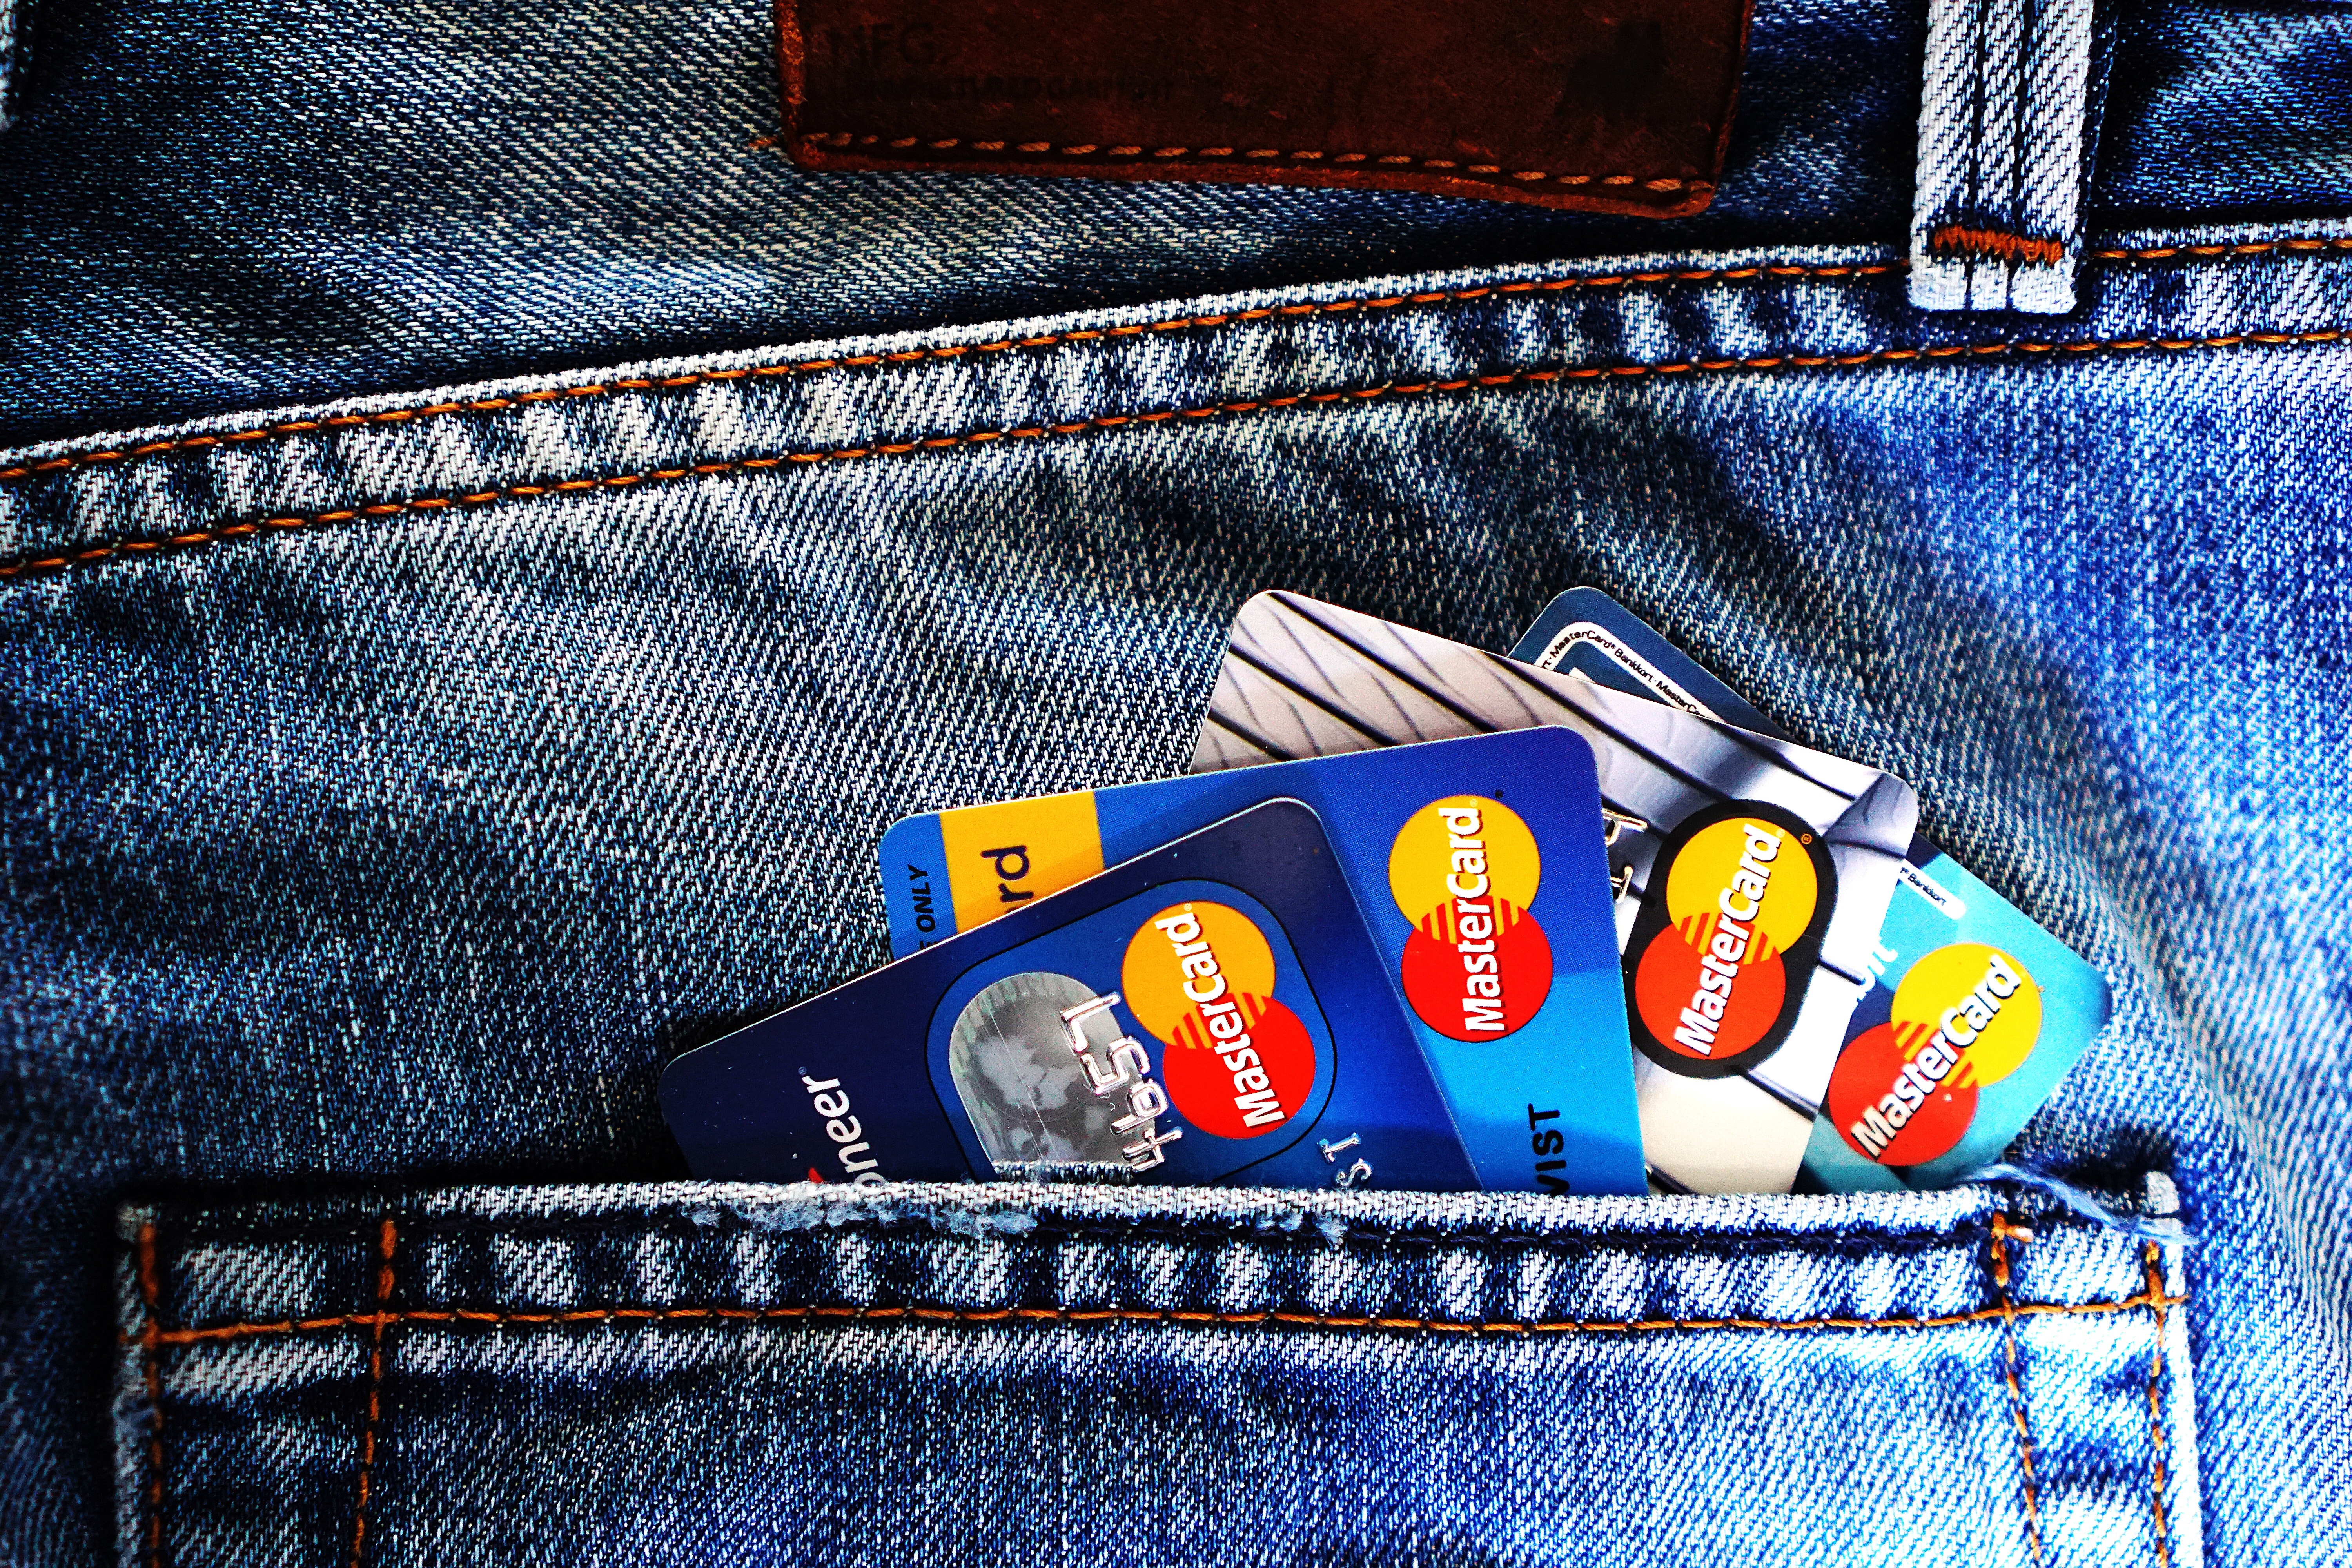 Credit cards in the back pocket of a pair of jeans